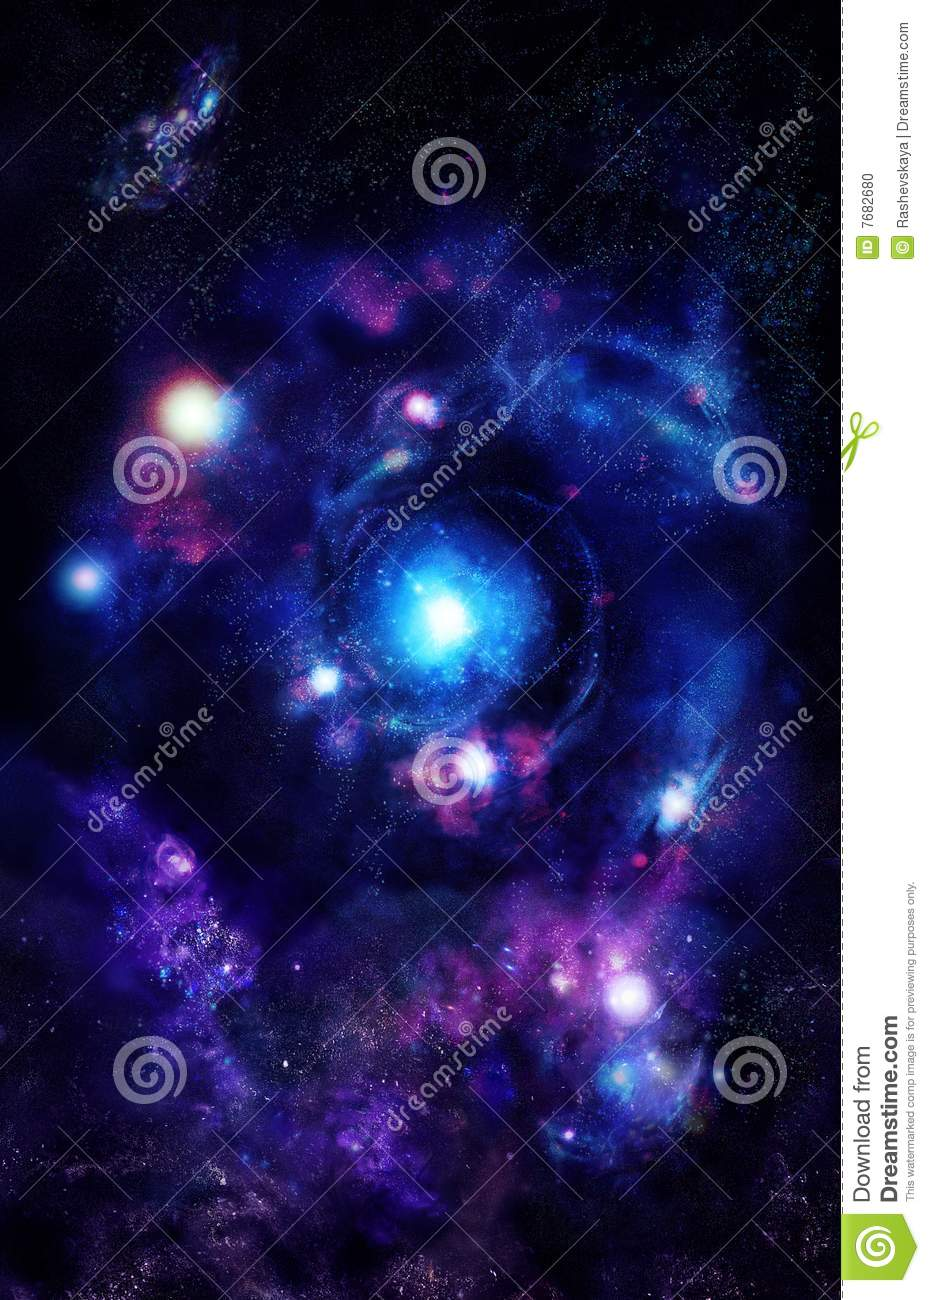 Center of galaxy